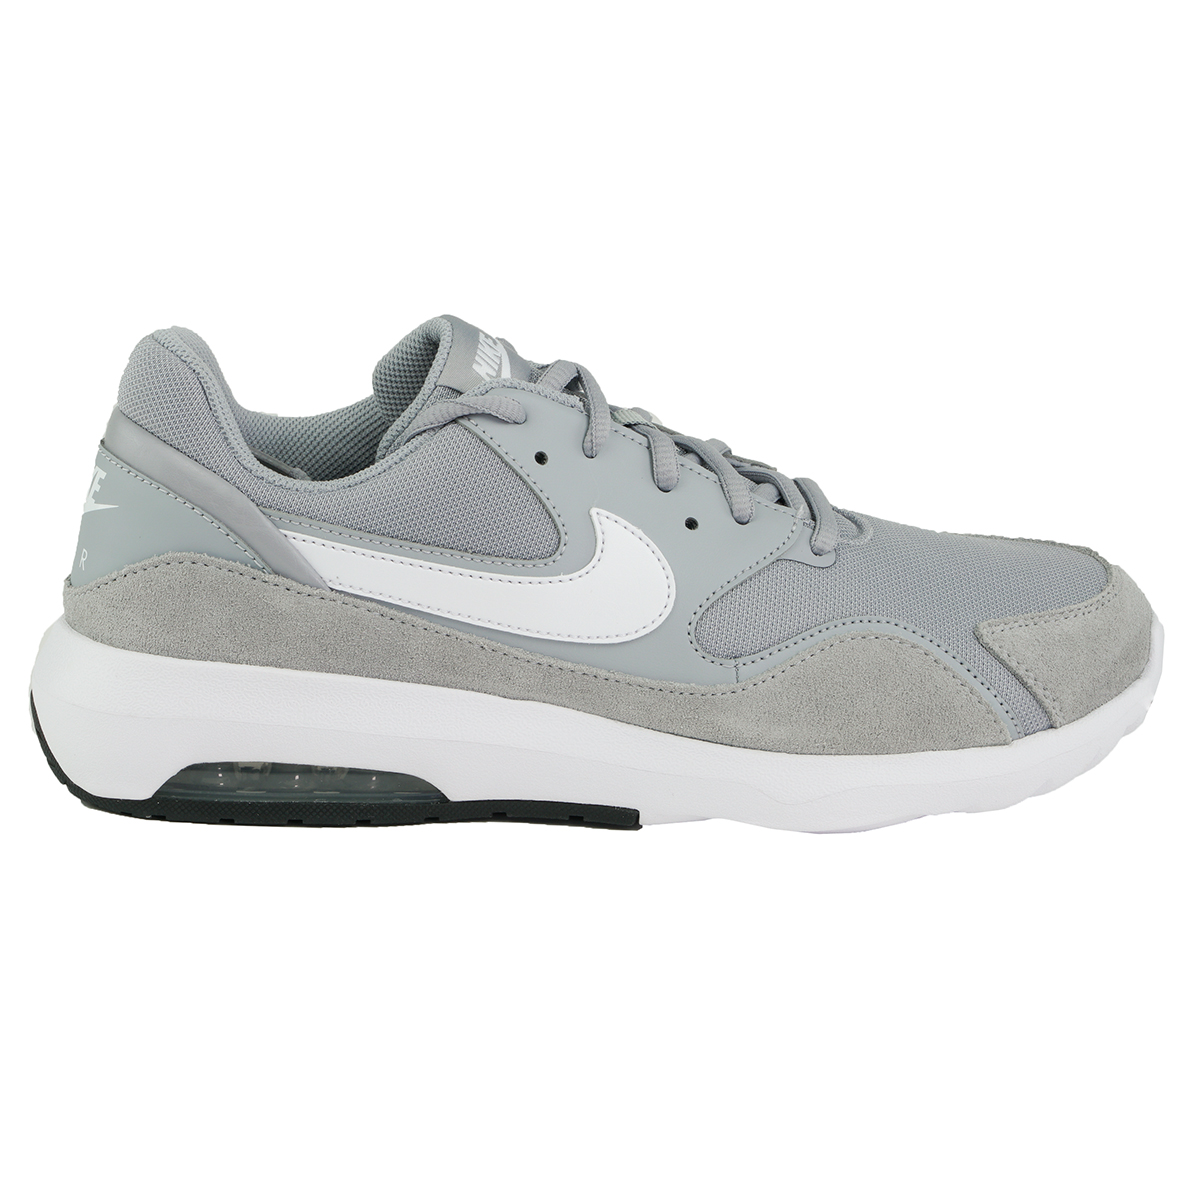 b480f74694a Details about Nike Men s Air Max Nostalgic Shoes